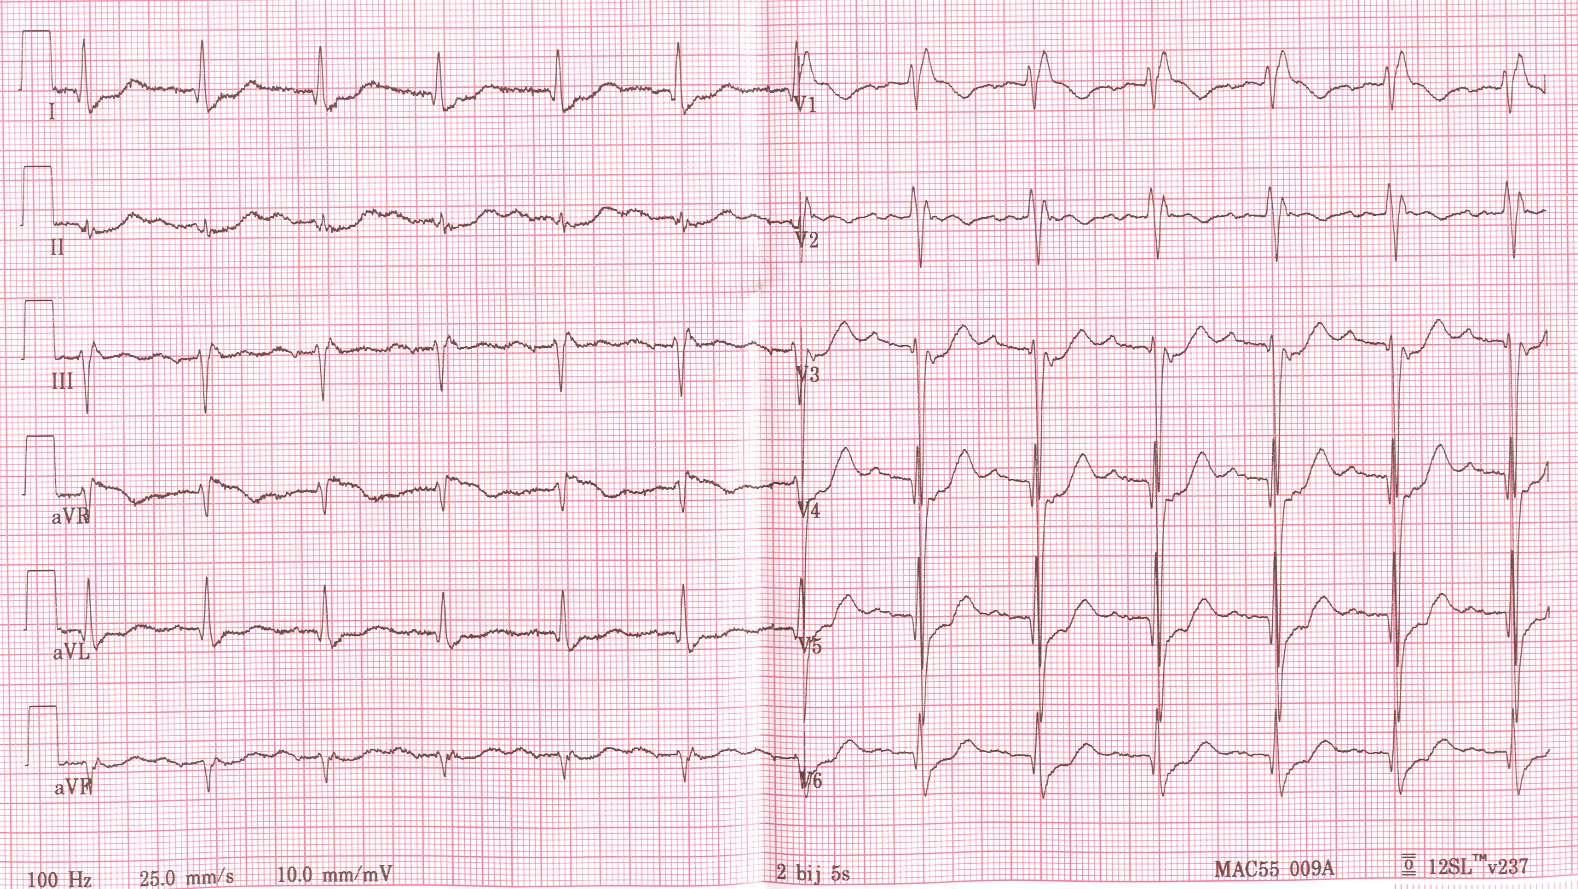 heart block Disease definition familial progressive cardiac conduction defect (pccd) is a hereditary cardiac conduction disorder that may progress to complete atrioventricular (av) block the disease is either asymptomatic or manifests as dyspnea, dizziness, syncope, abdominal pain, heart failure or sudden death.